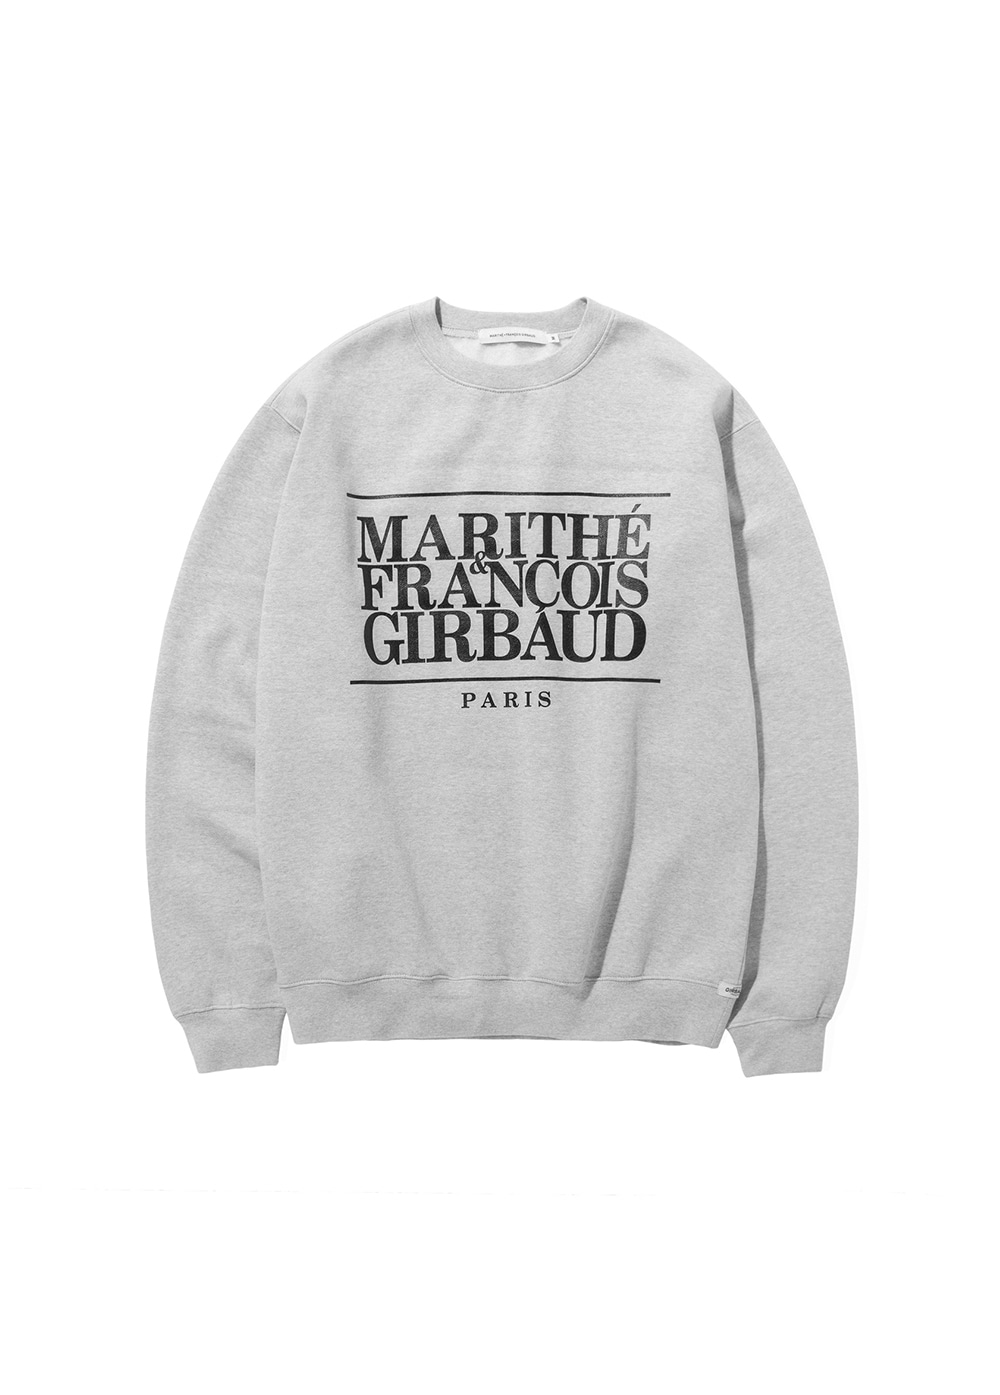 MFG CLASSIC LOGO SWEATSHIRT heather gray